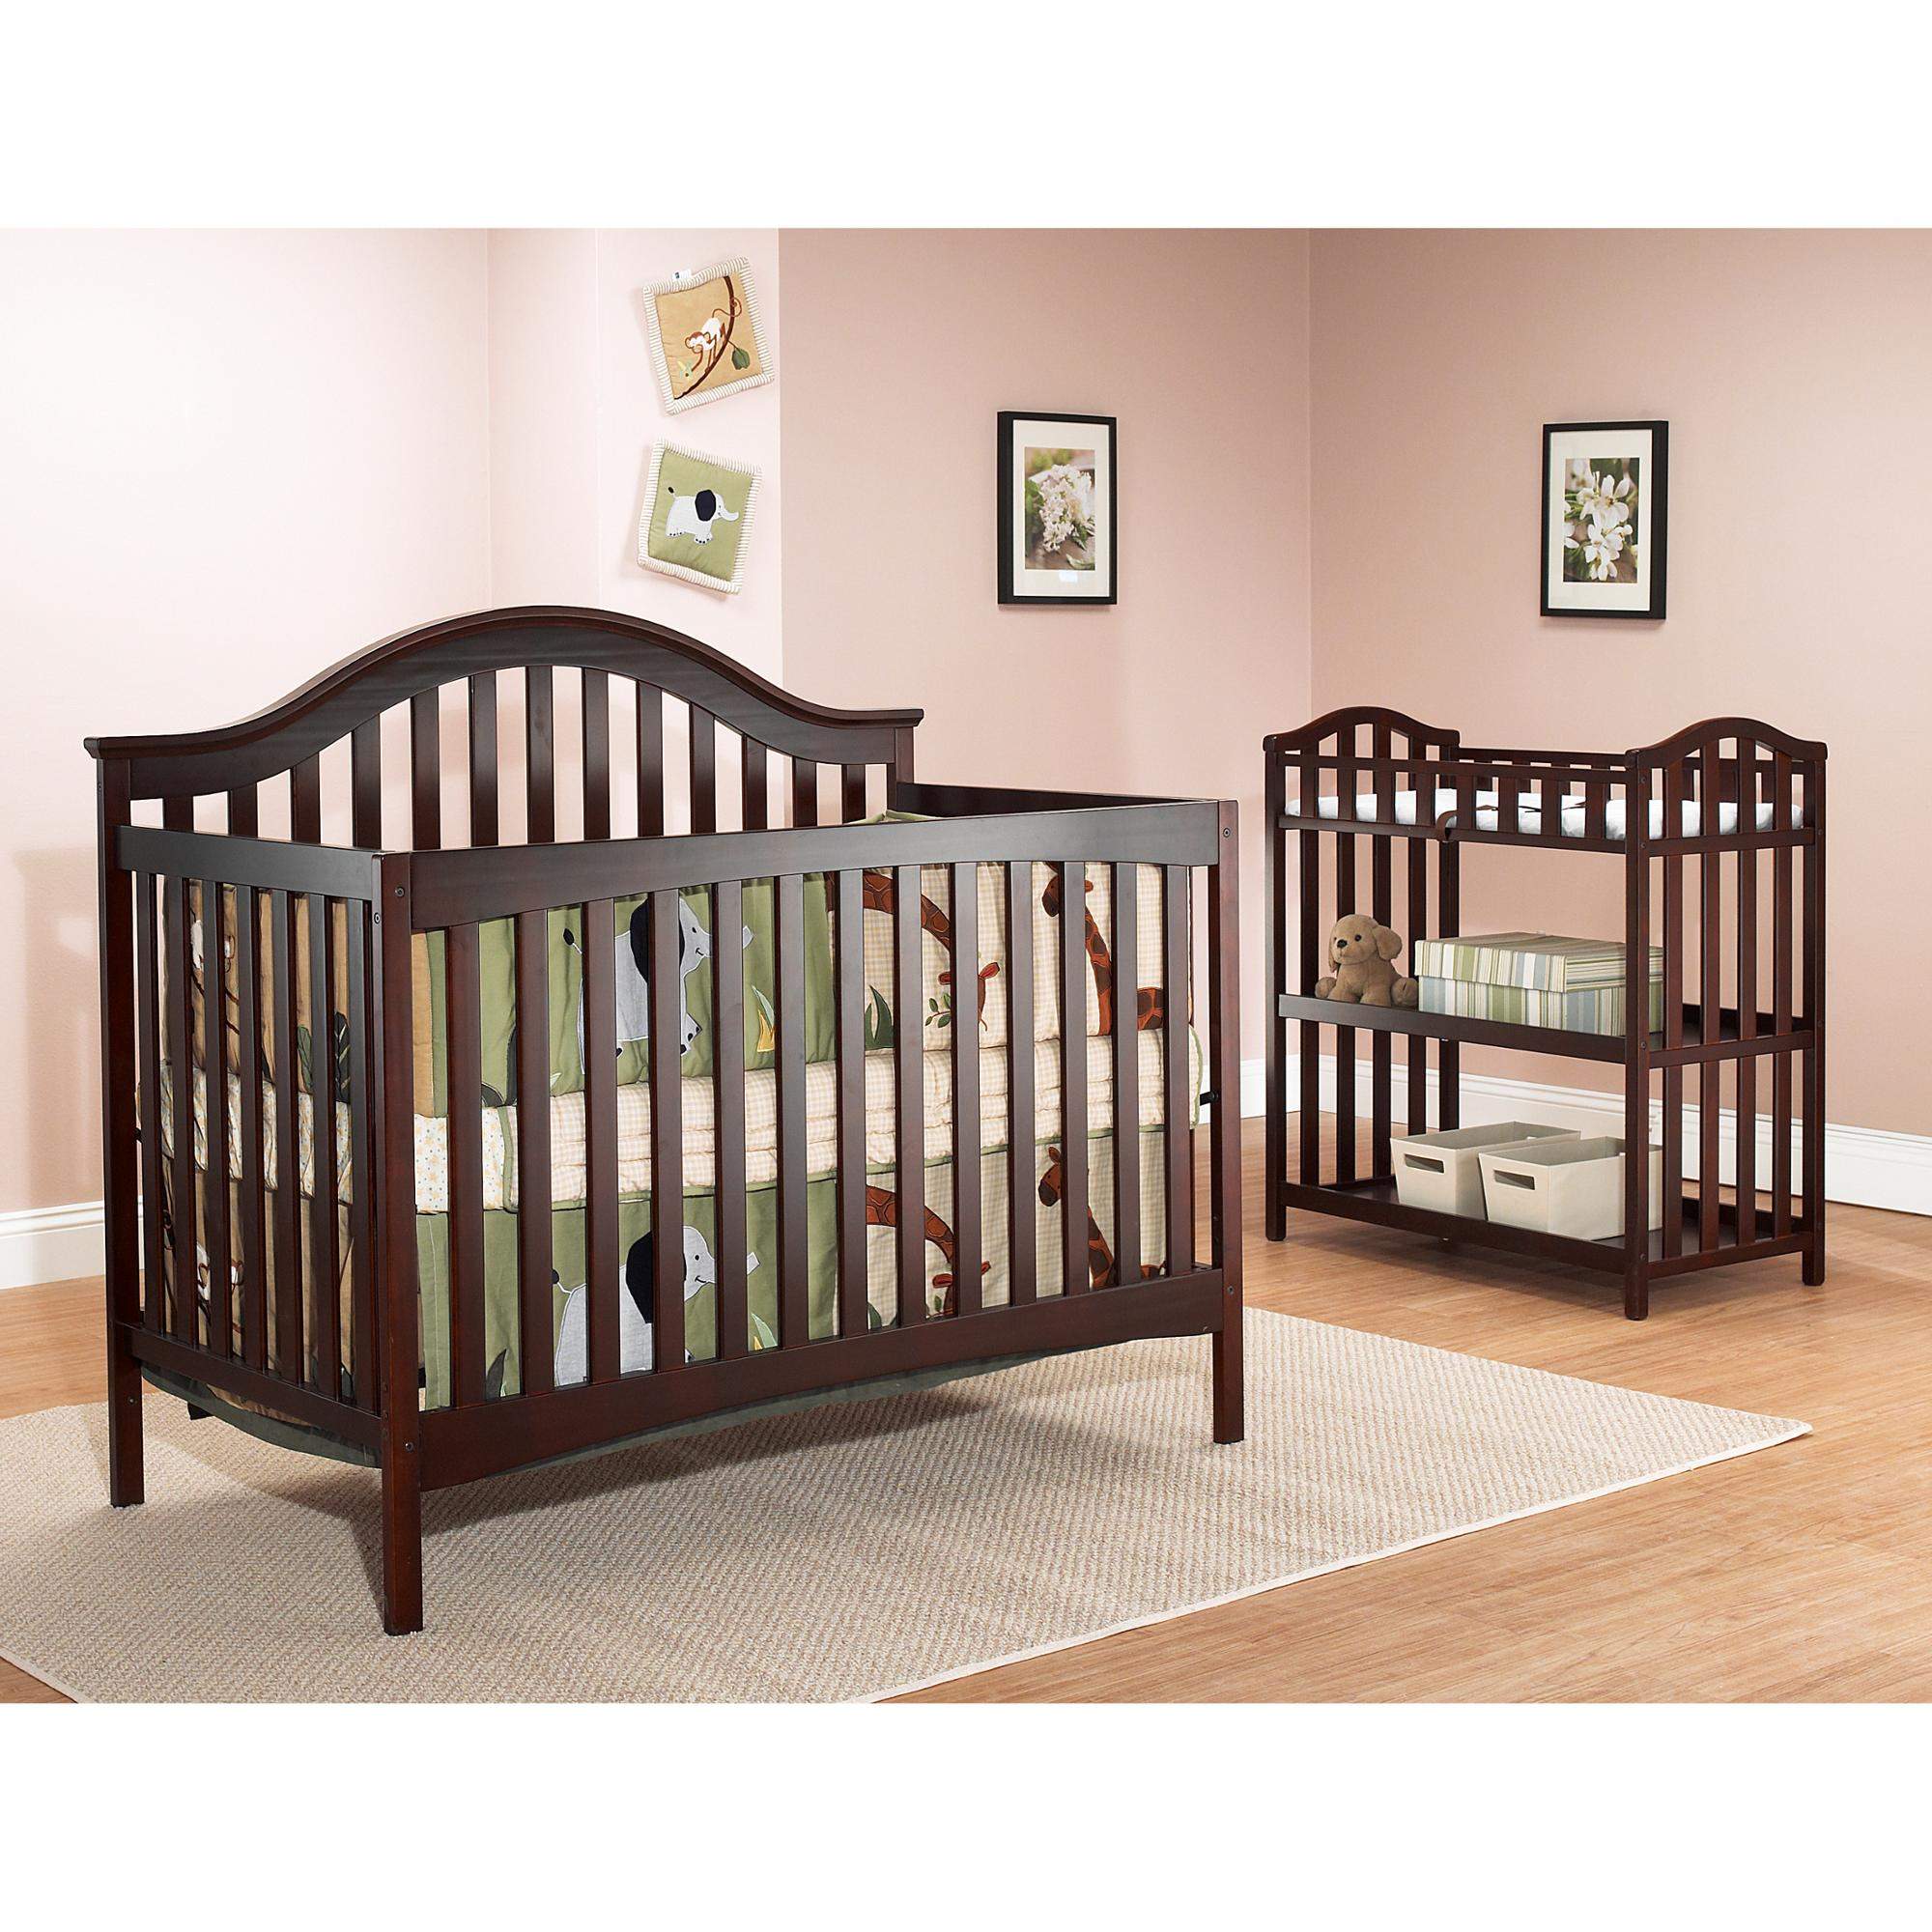 Off White Cribs | Bellini Cribs | Bellini Baby Crib